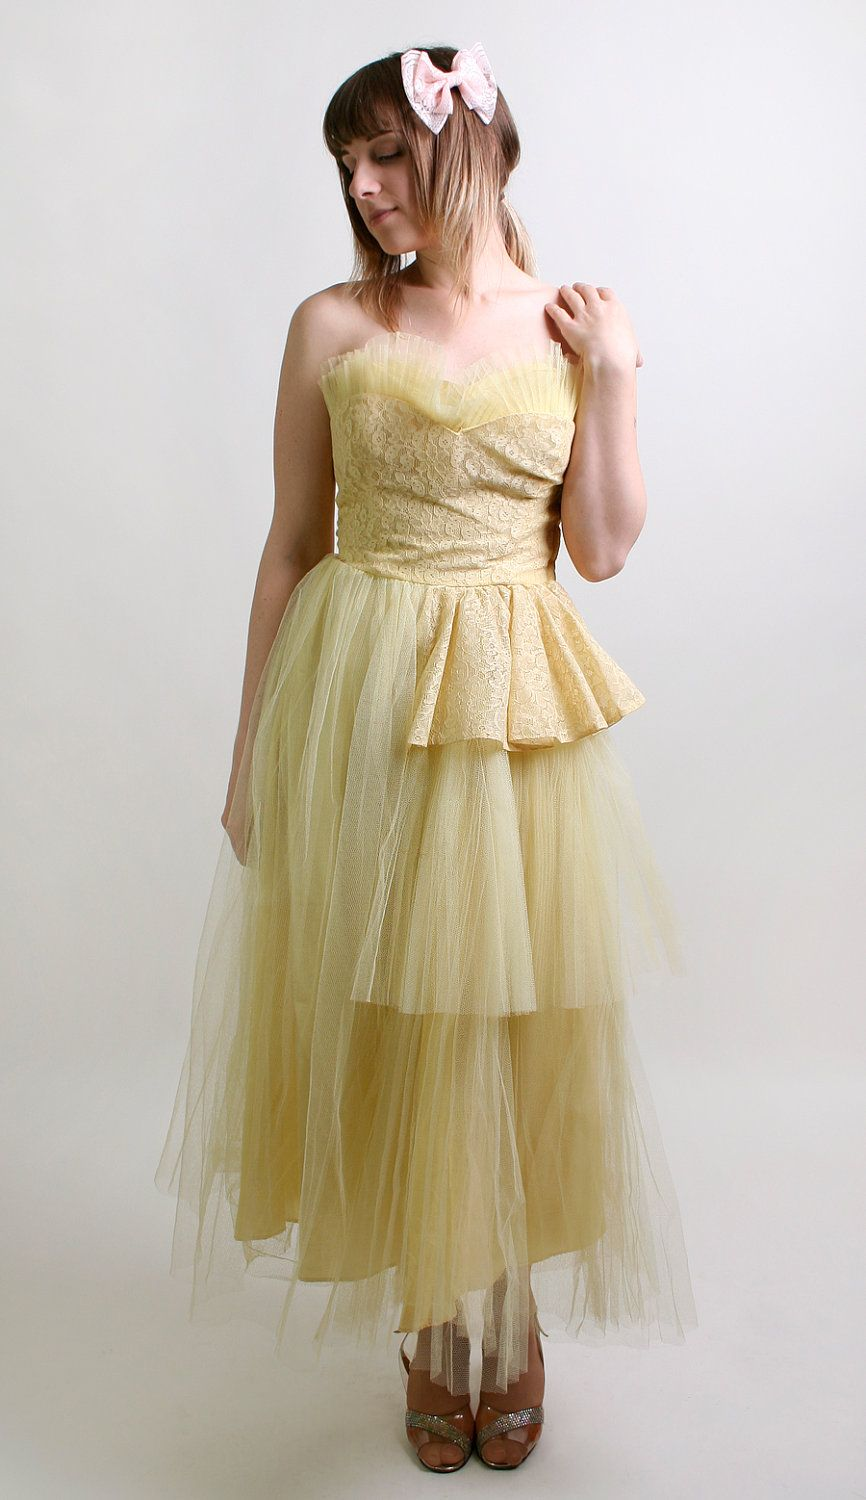 1950s Prom Dress in Sunshine Yellow - Strapless Tulle Evening Formal ...